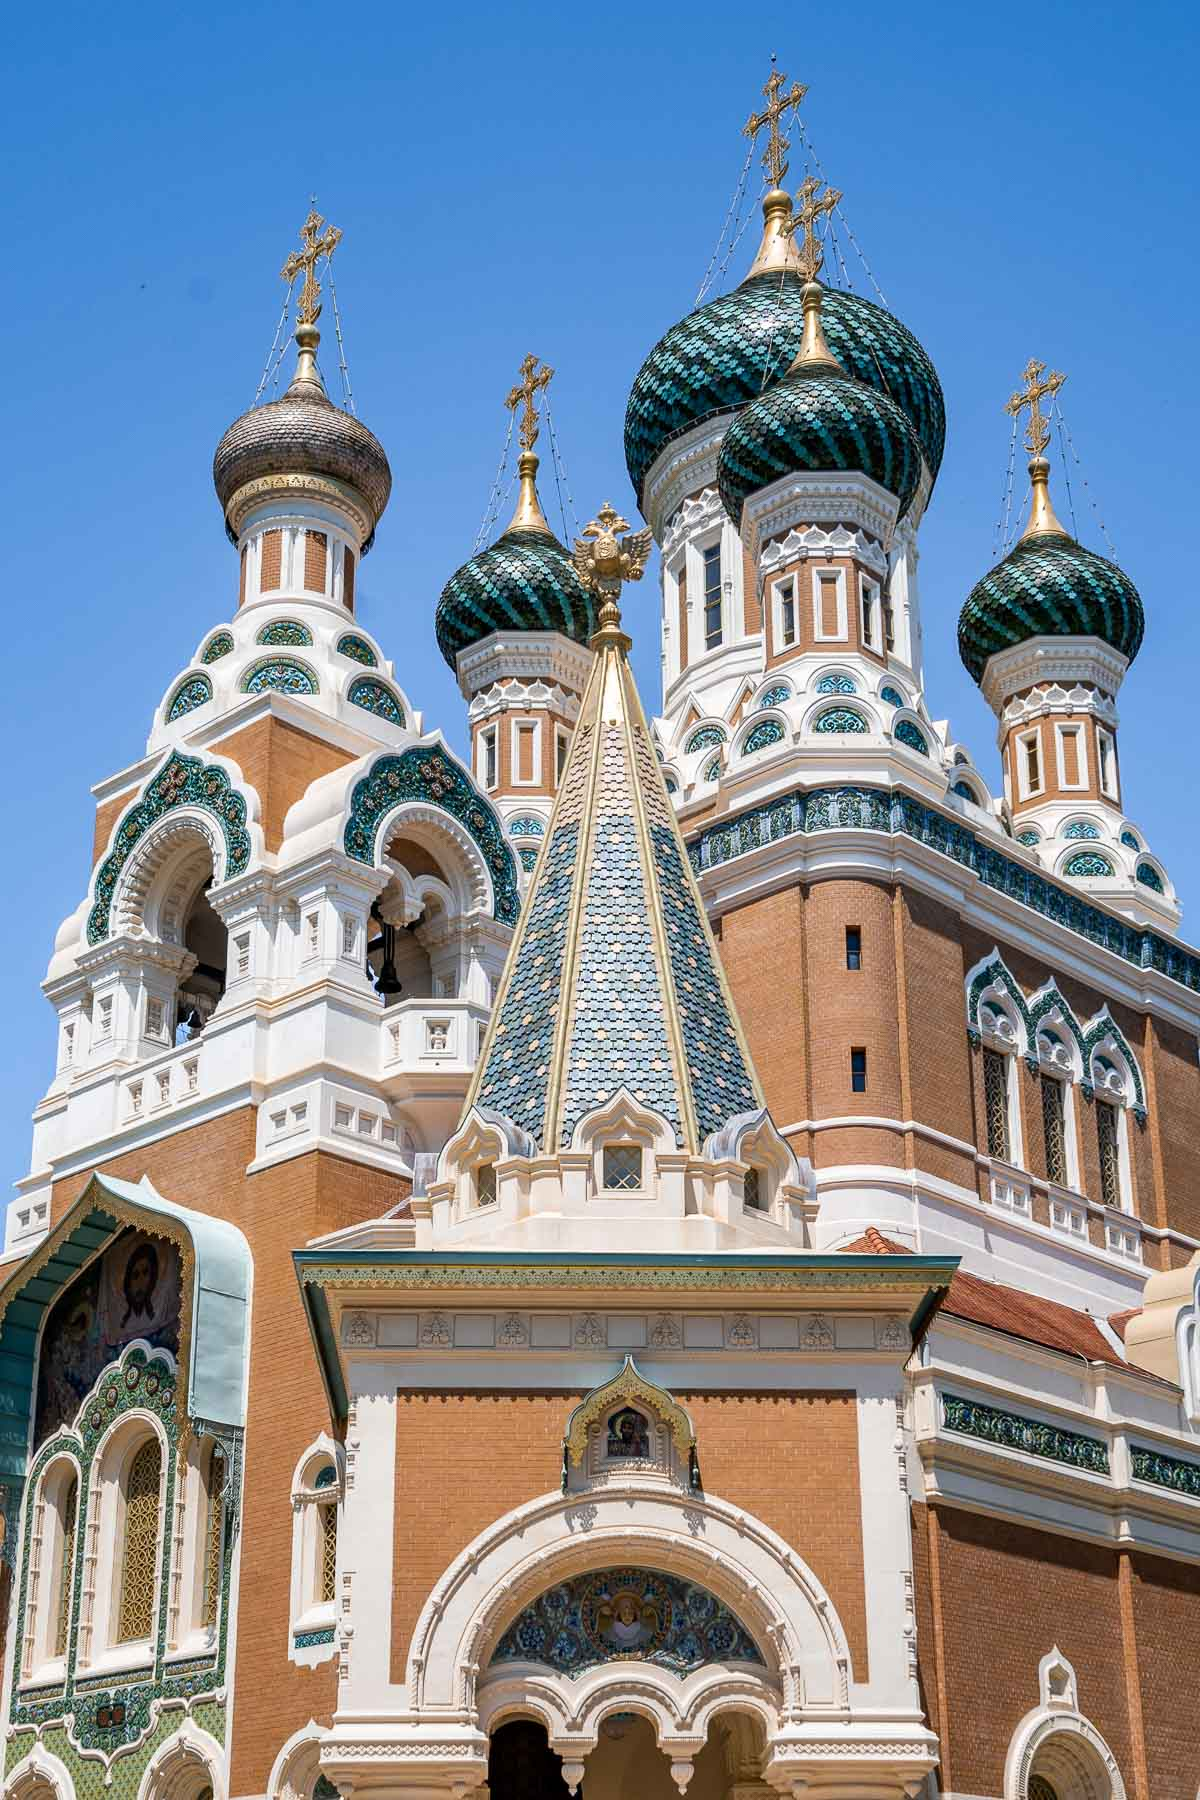 St. Nicholas Russian Orthodox Cathedral in Nice, France